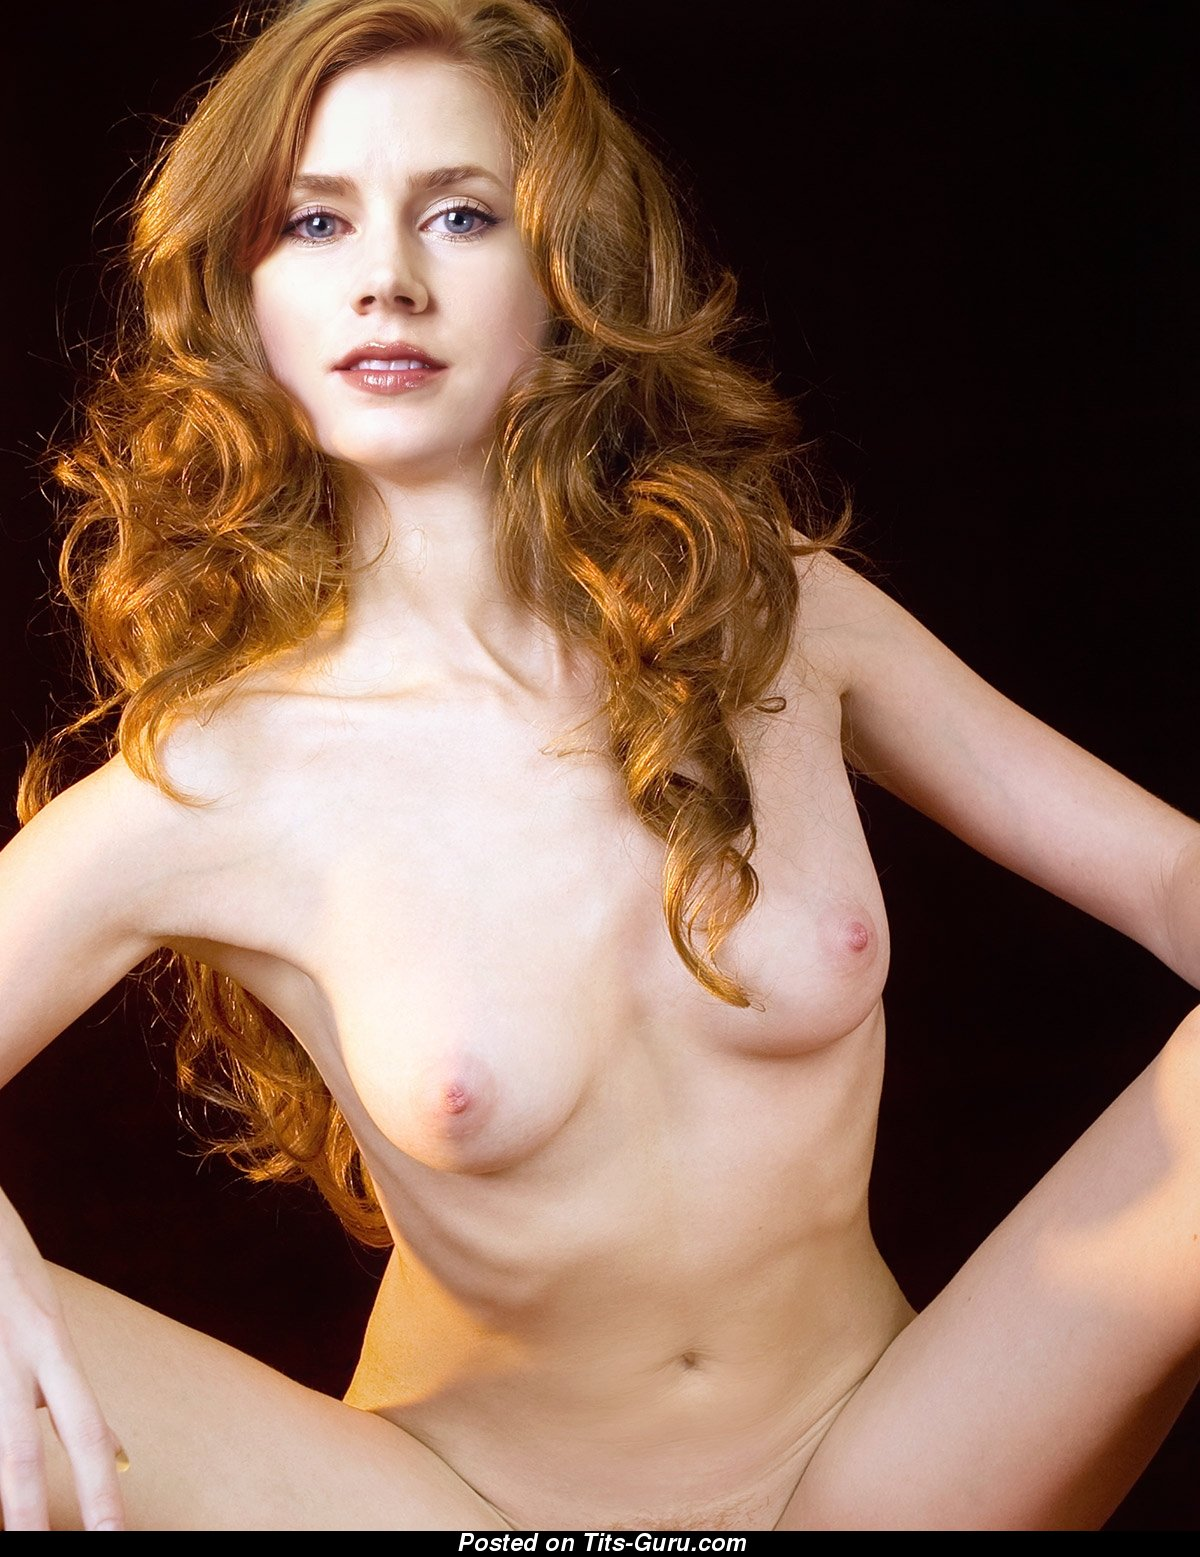 Amy Adams Hot Naked amy adams nude 🌶️ 12 pics of hot naked boobs